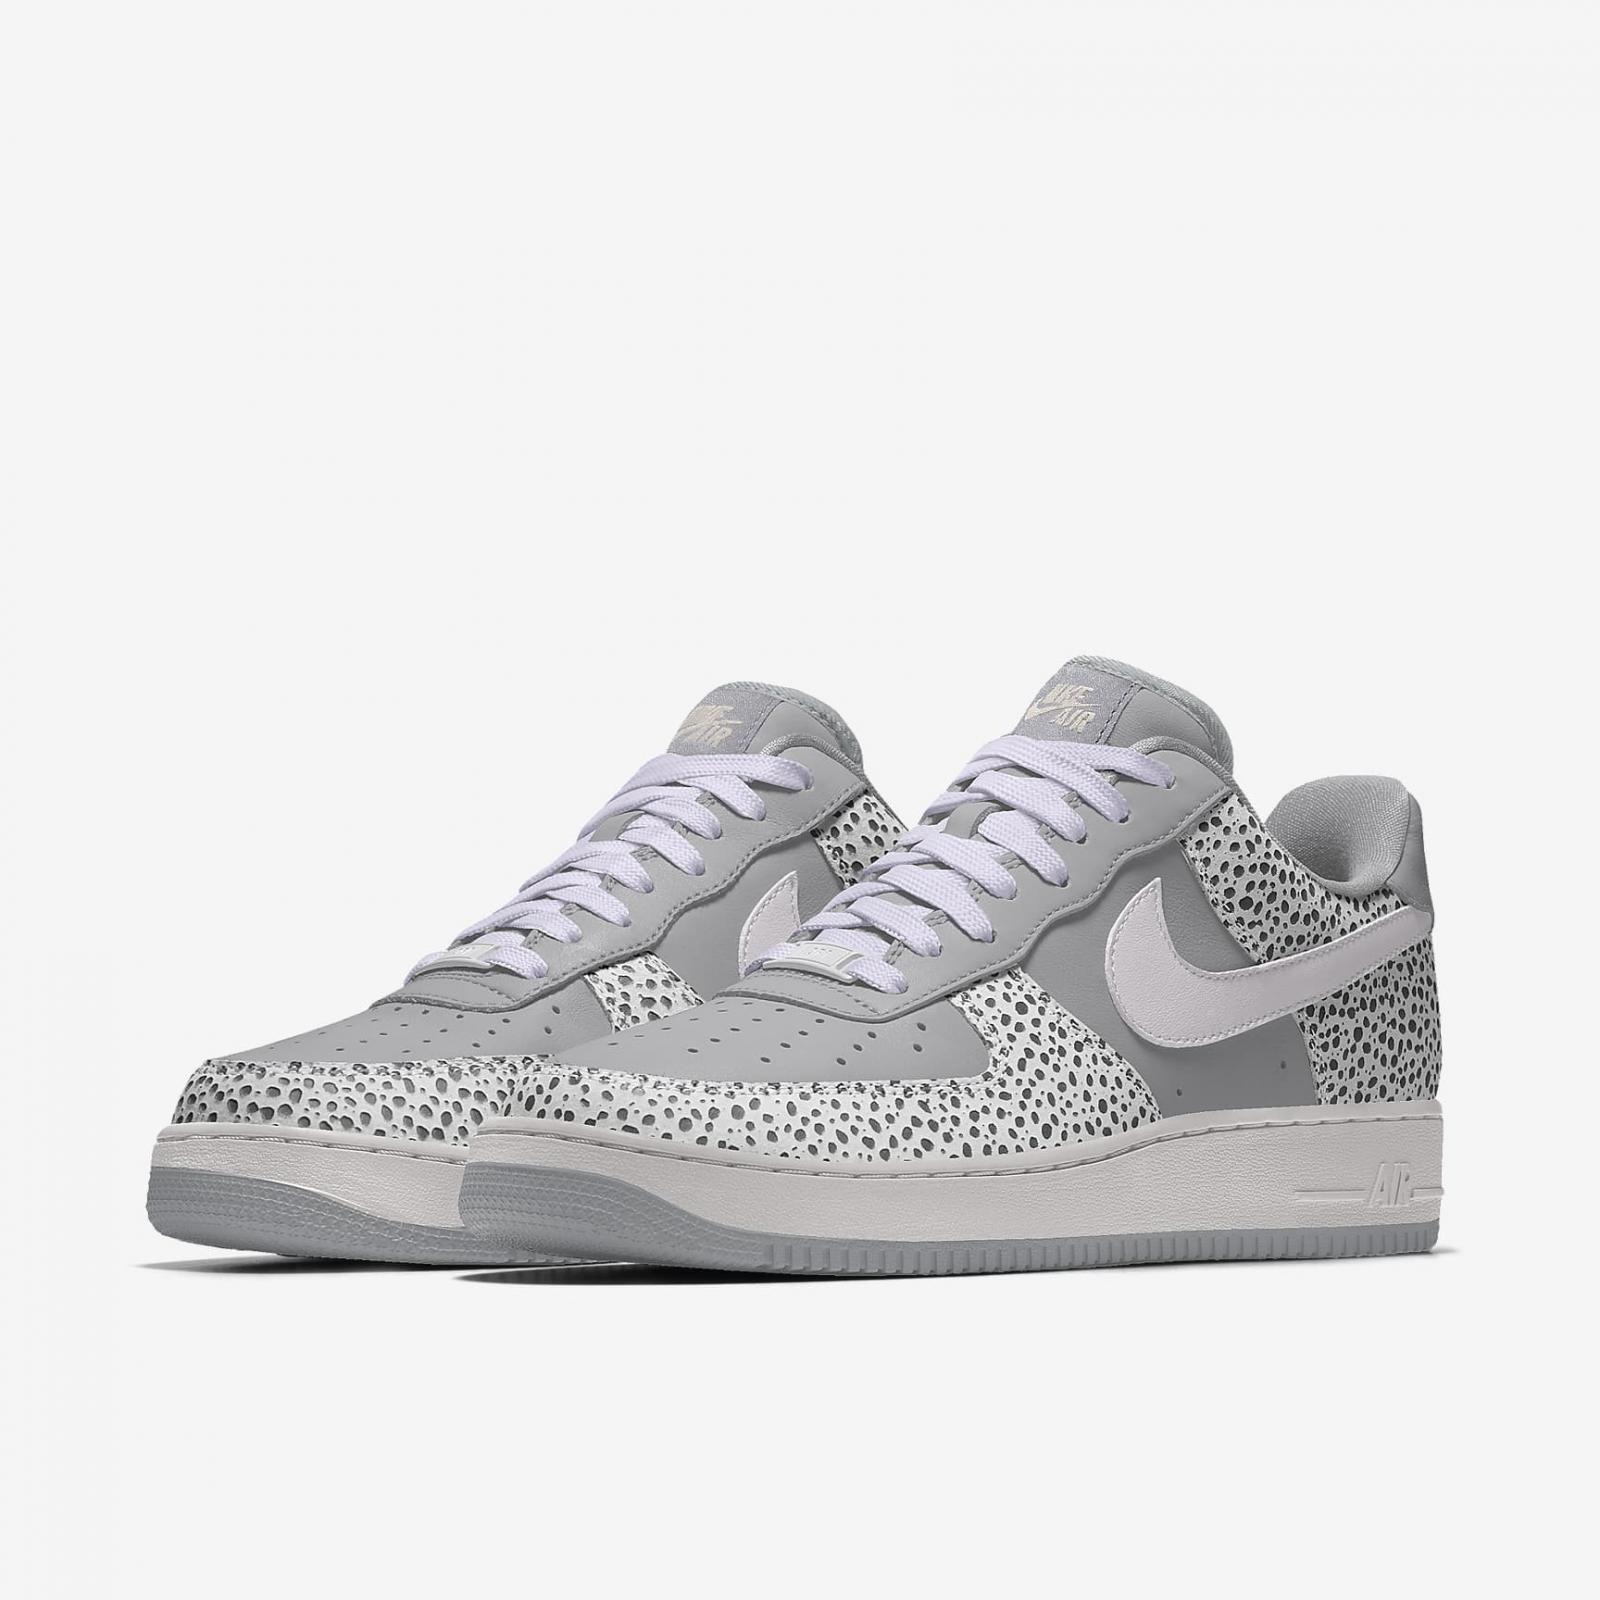 Nike Air Force 1 Low Unlocked By You更新全新设计选项